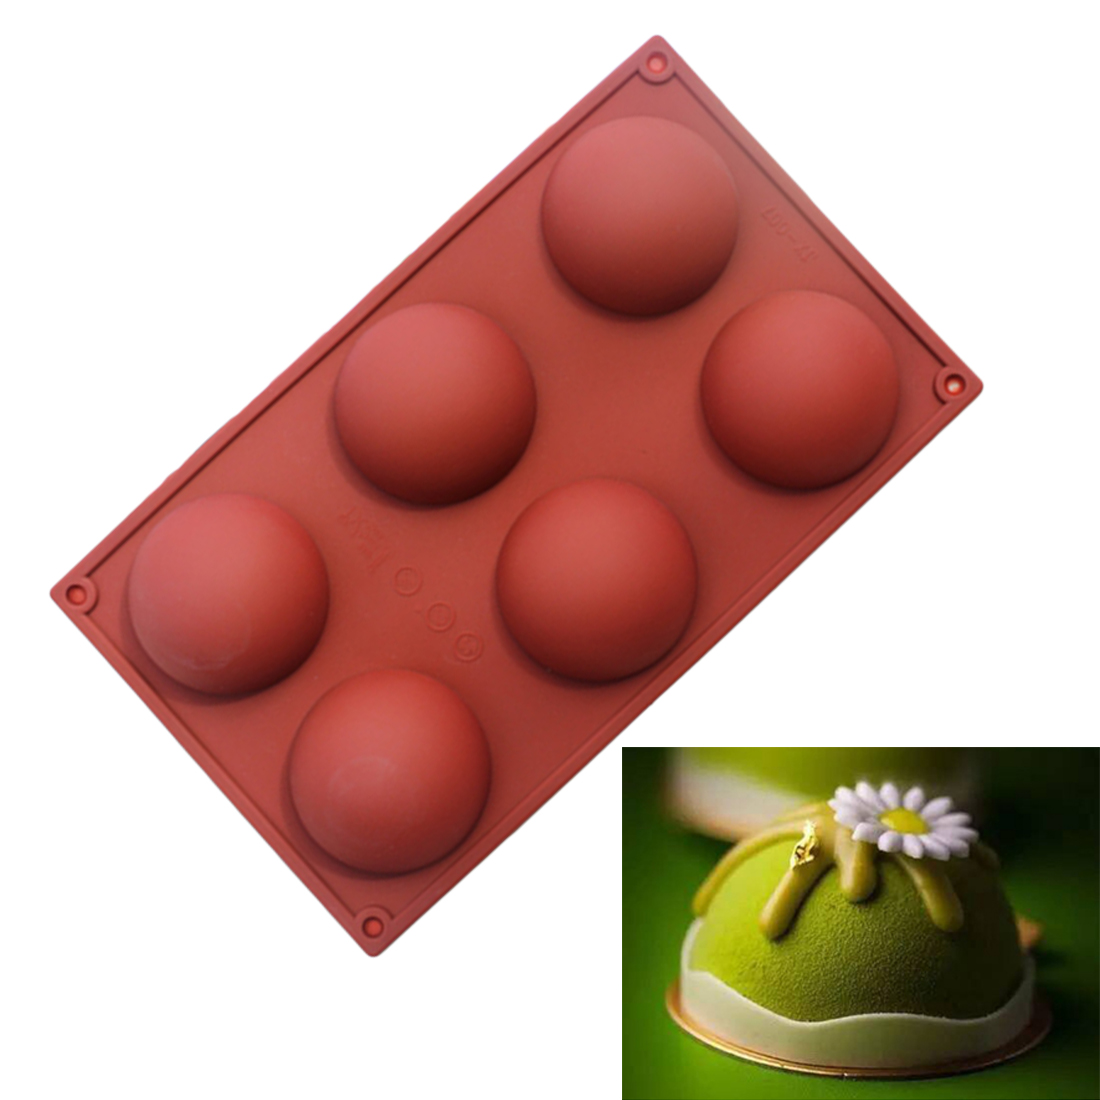 Hot Sale 6 Holes New Cake Tools Fondant Kitchen Bakeware Silicone Cupcake Baking Tray Mousse Cake Mold Muffin Pan